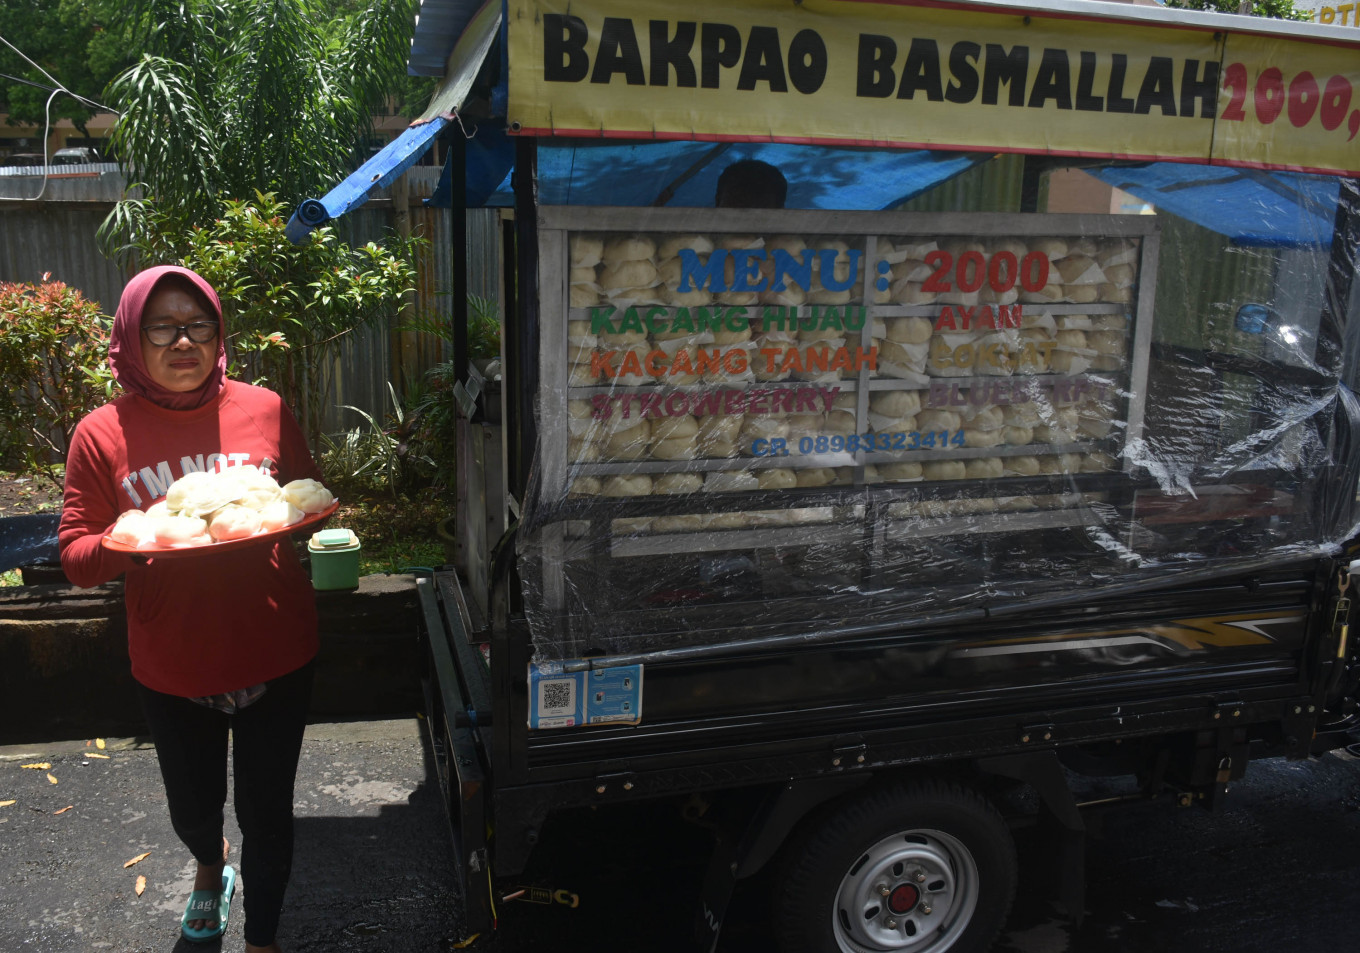 'Bakpao' (steamed buns) were among the food distributed to the orphanage's residents.